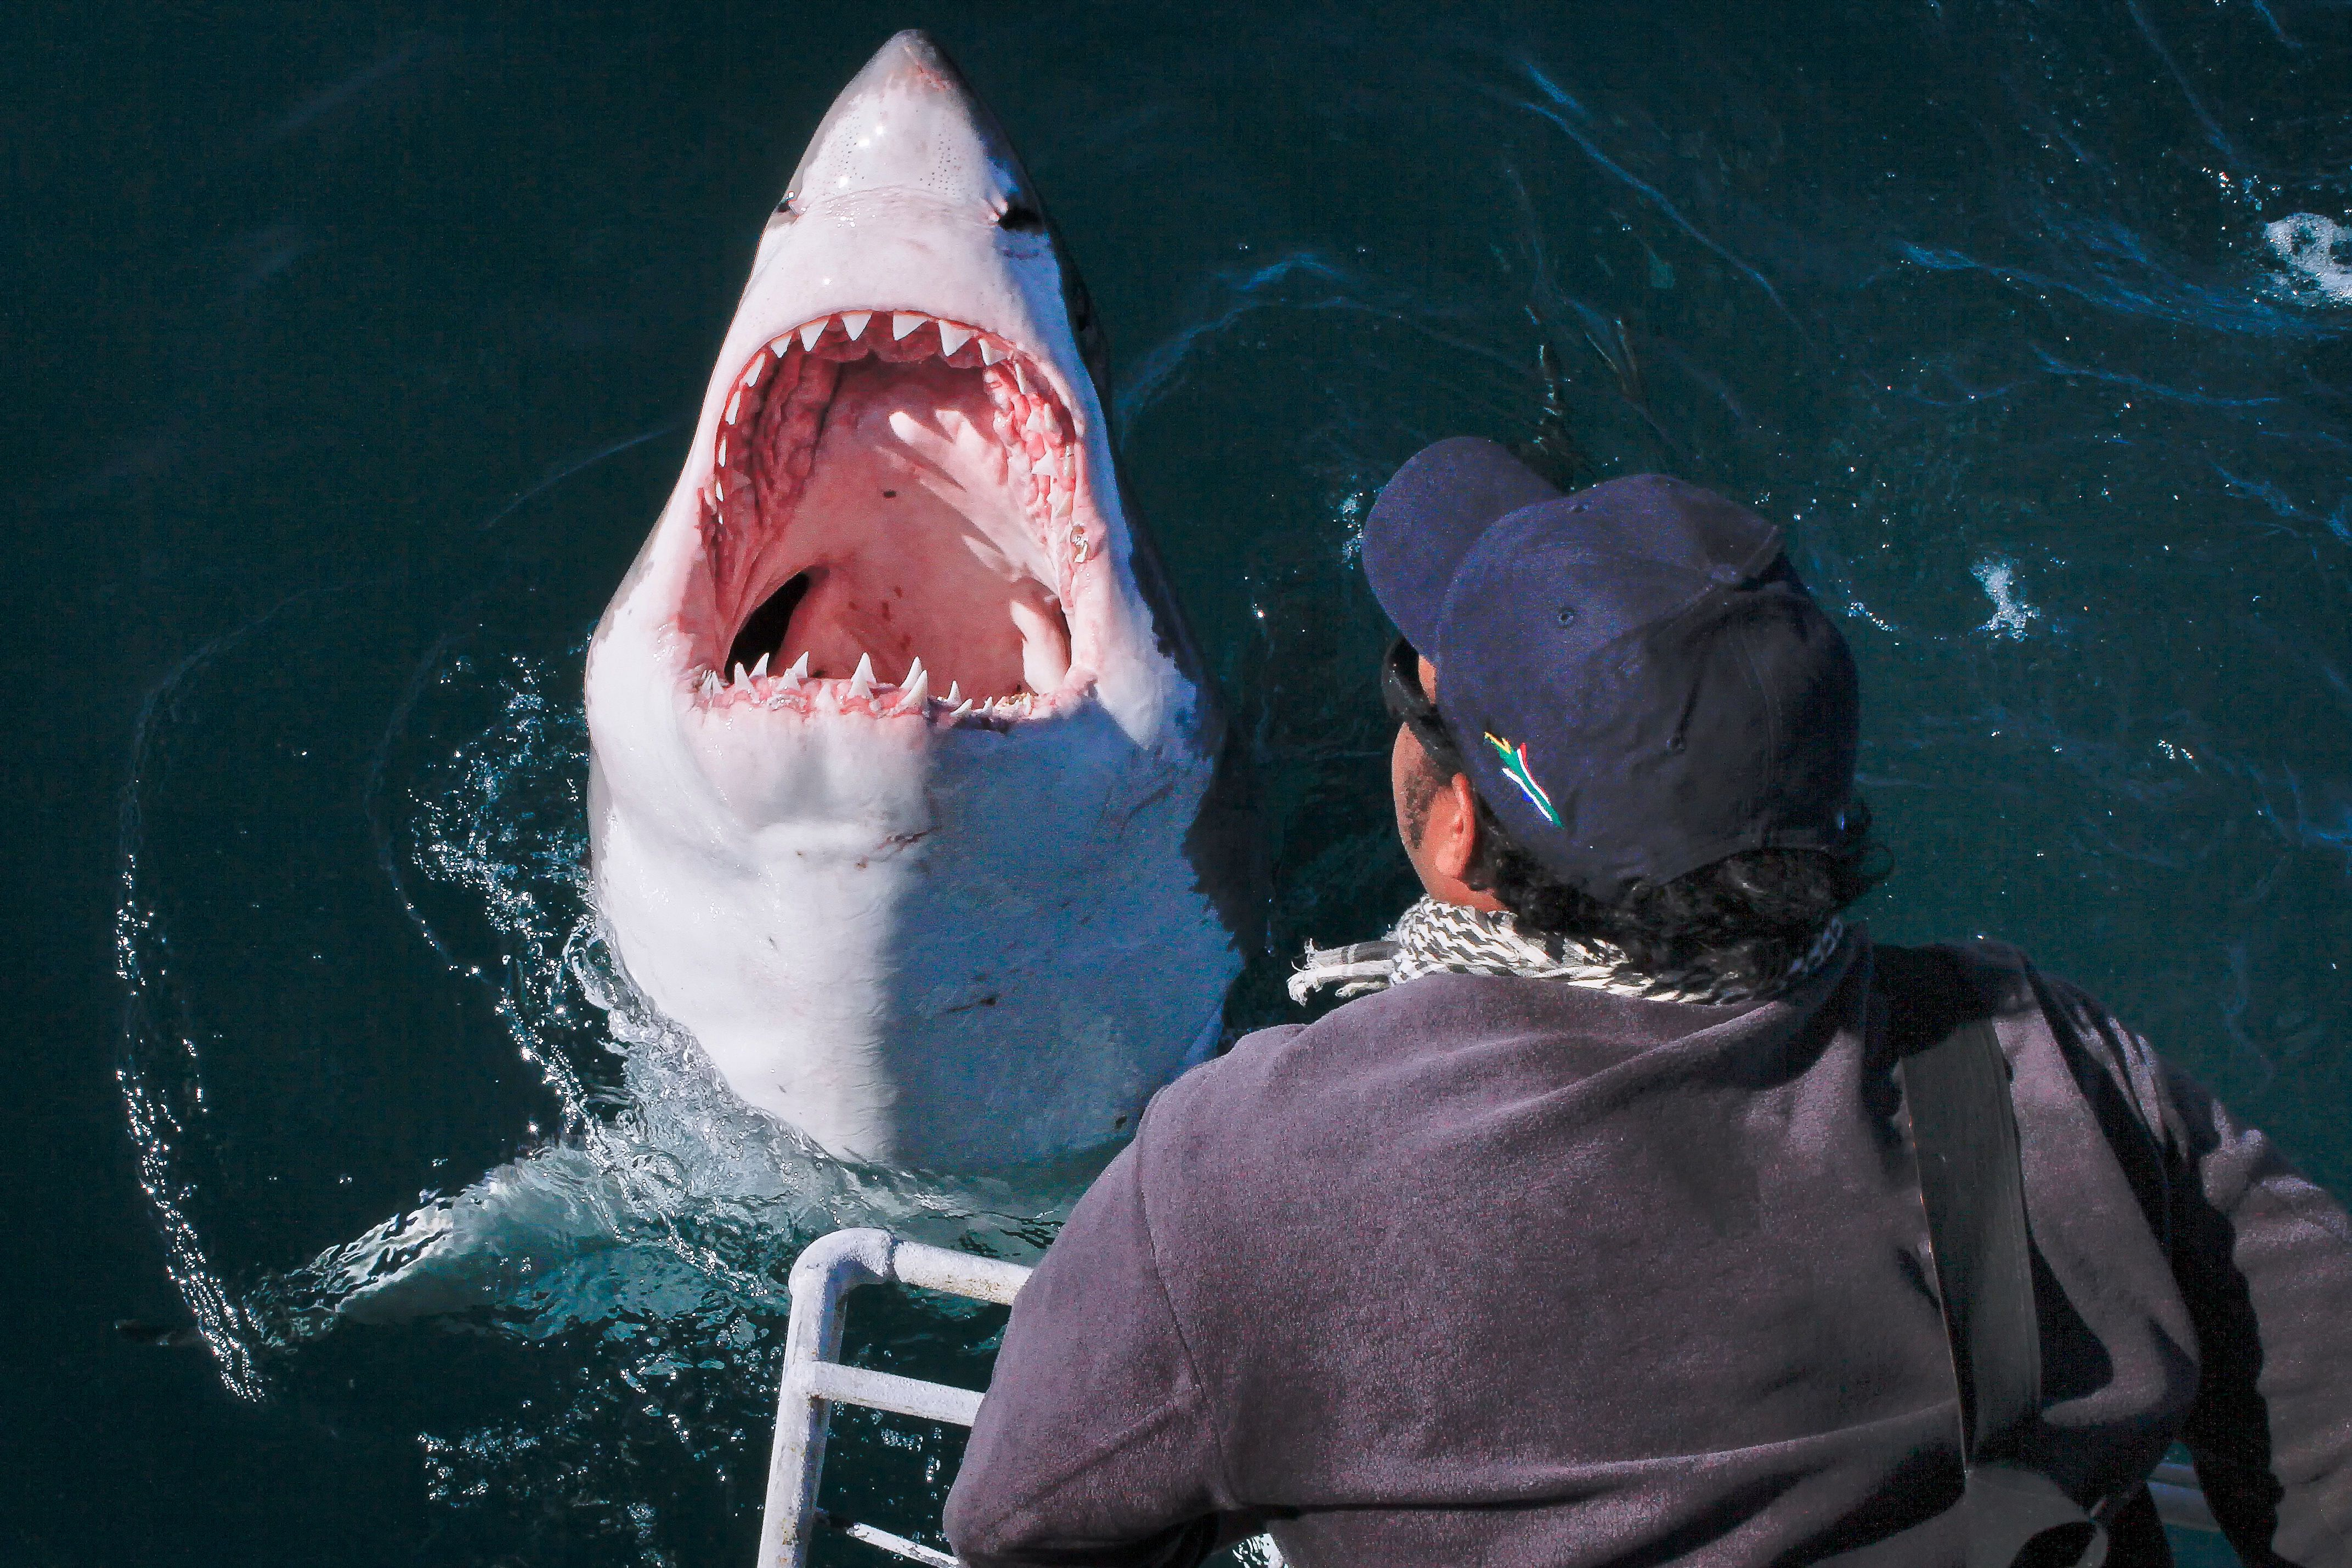 A photographer looks on as he stands terrifyingly close to the monster fish